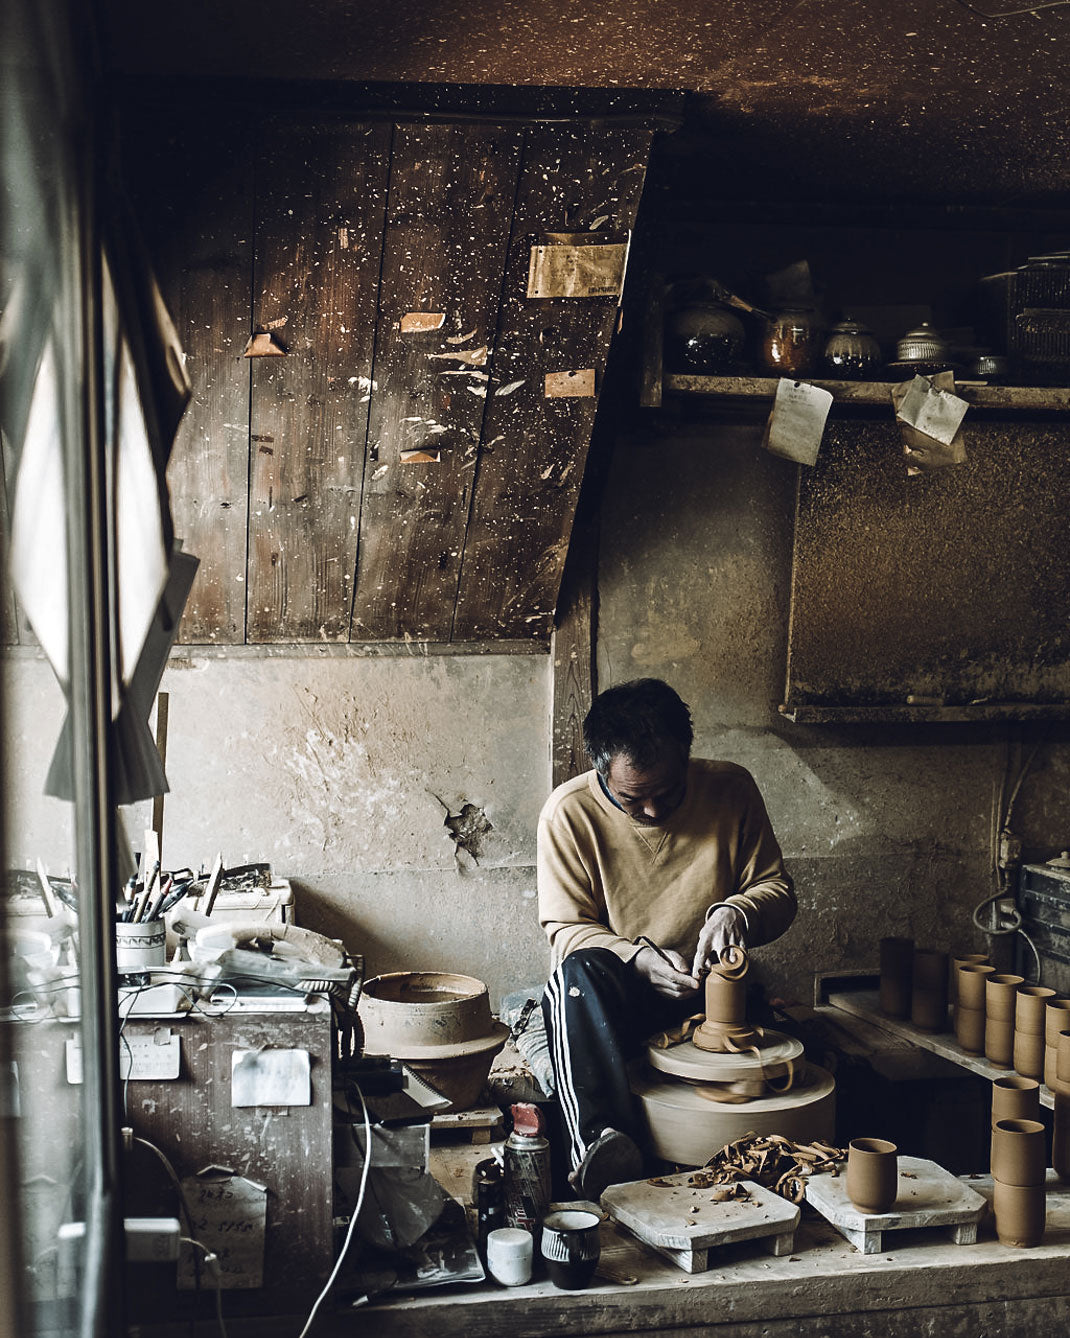 Making pots on a pottery wheel in the Onta pottery village